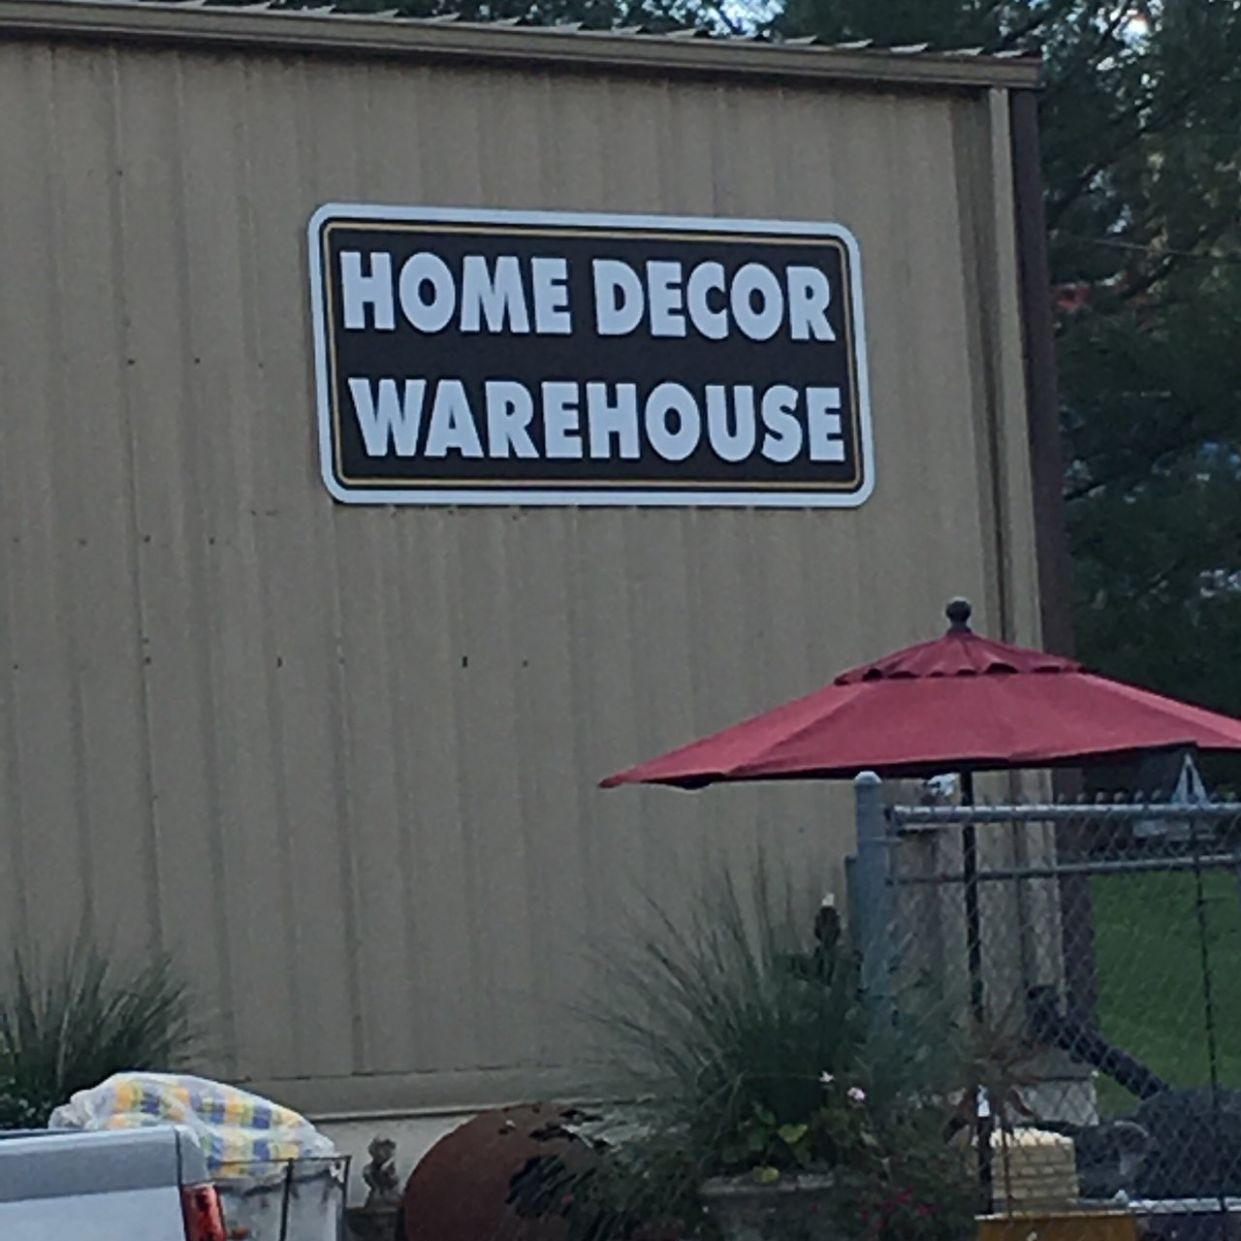 Home Decor Warehouse (Manheim) - 10 All You Need to Know BEFORE ...